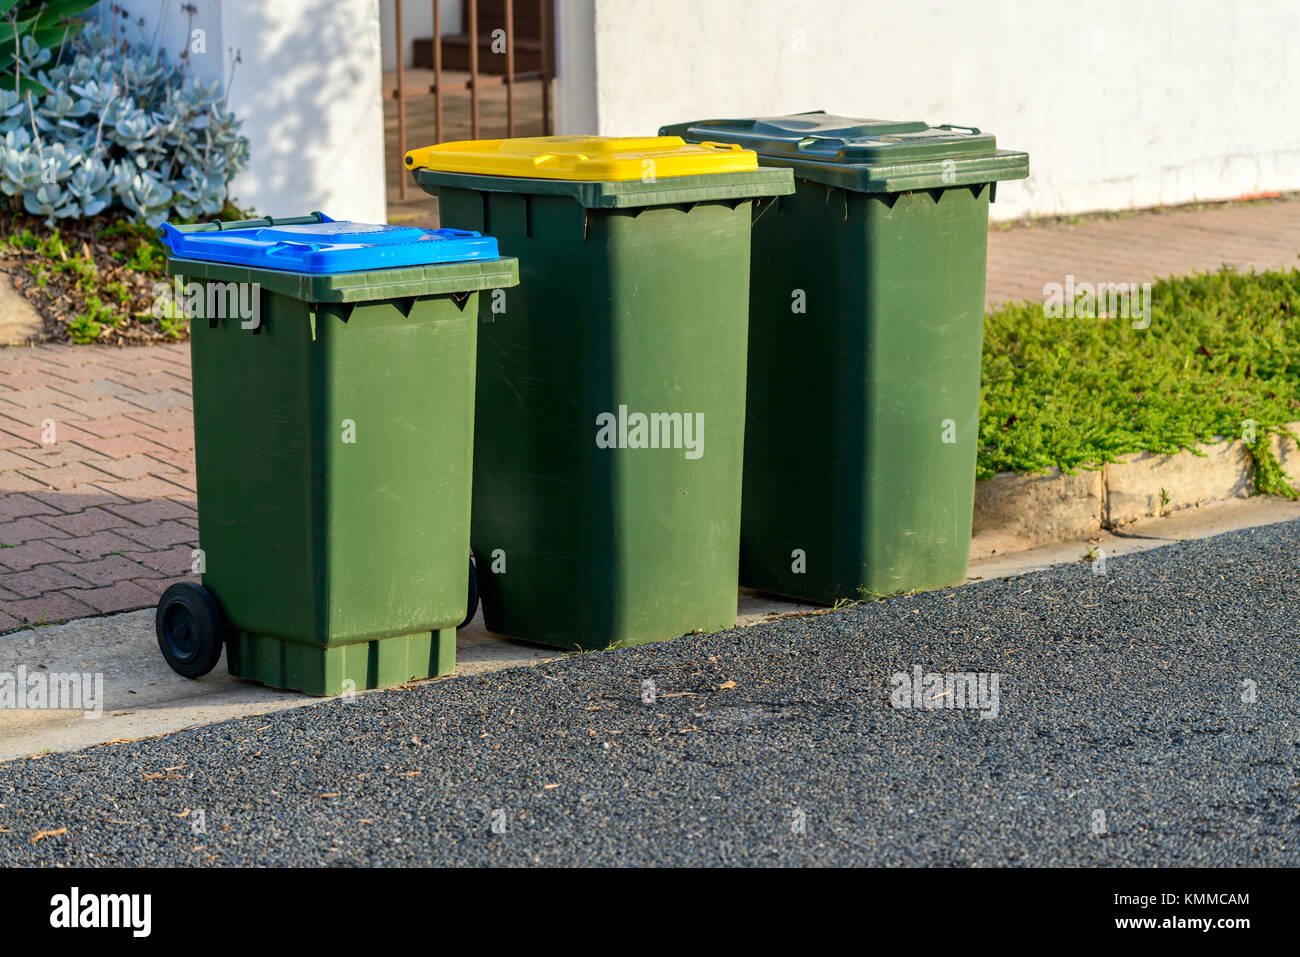 Kerbside waste bins ready for collection by local council in Australian suburb Stock Photo